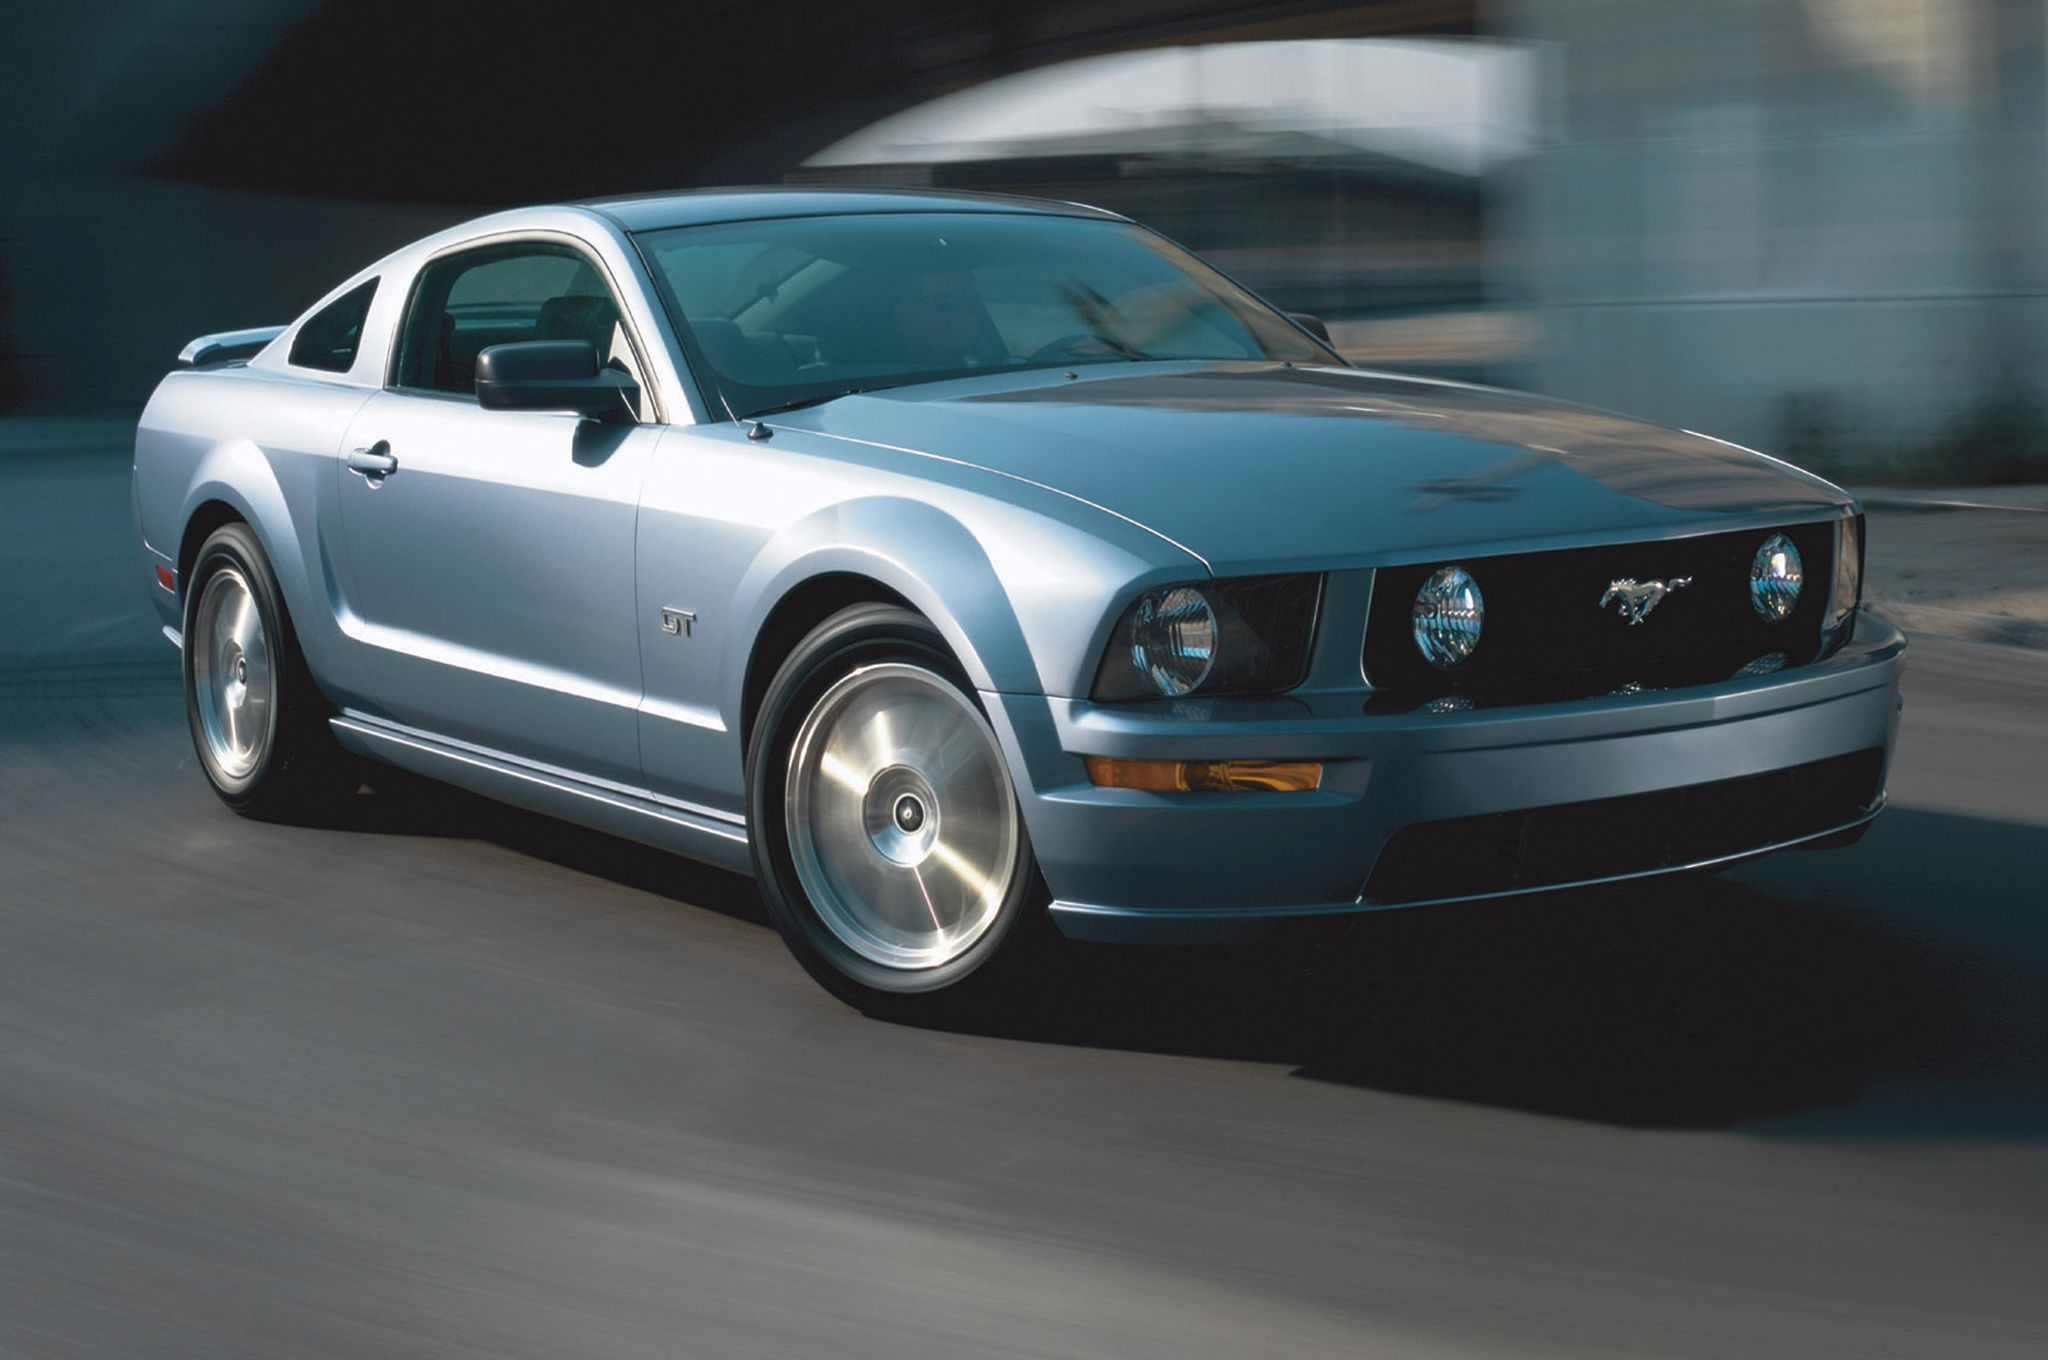 The 25 best ford mustang test ideas on pinterest 2015 shelby gt500 ford mustang boss and 68 mustang for sale